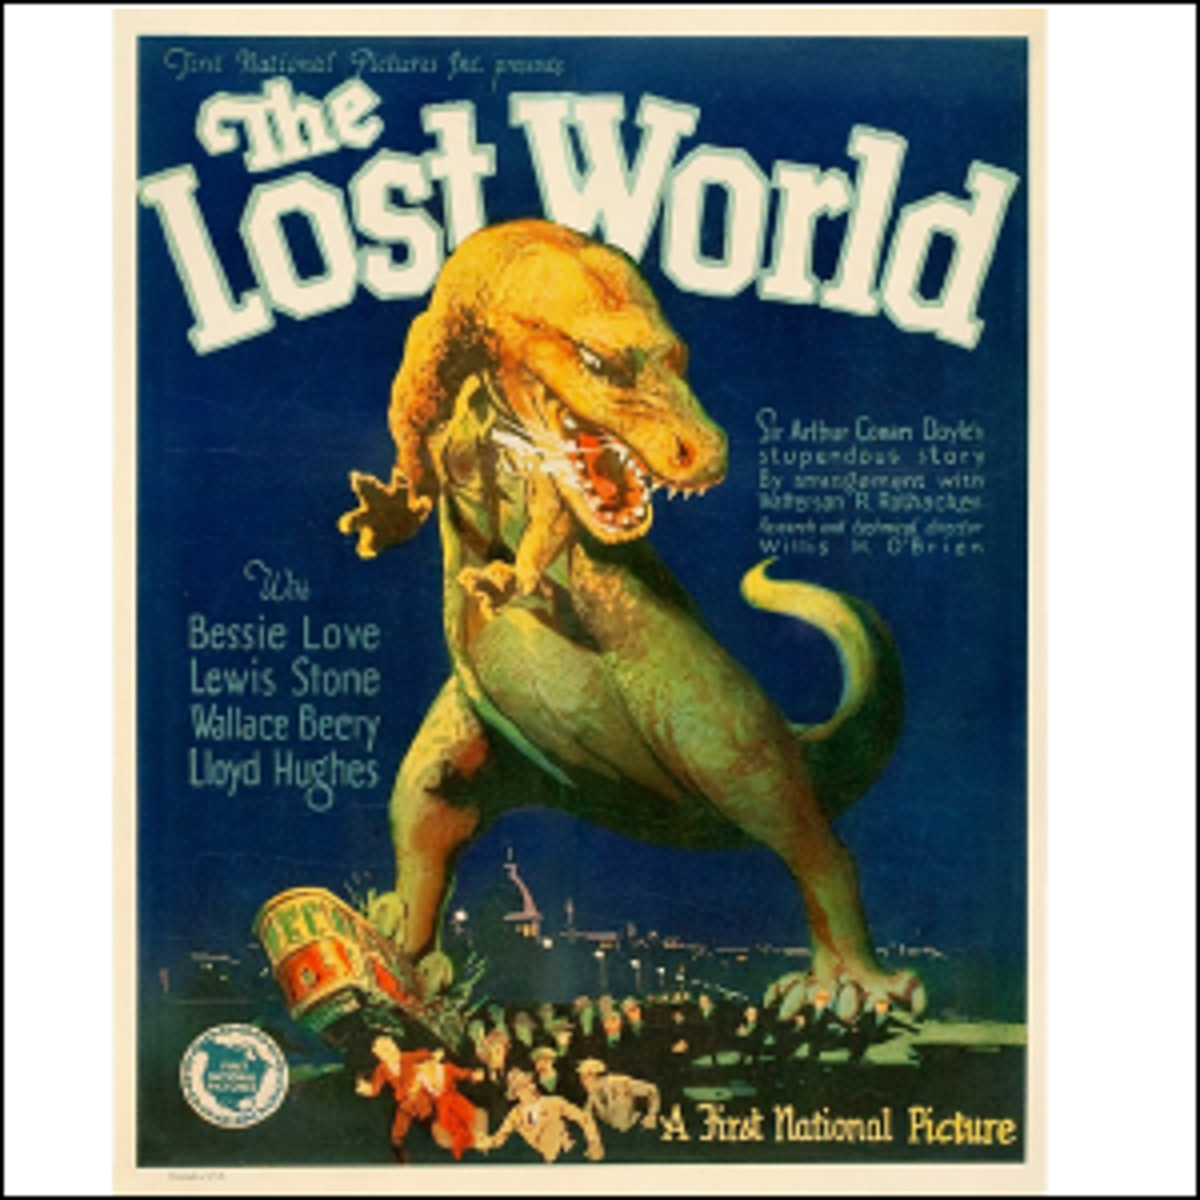 The 1925 movie poster for The Lost World.